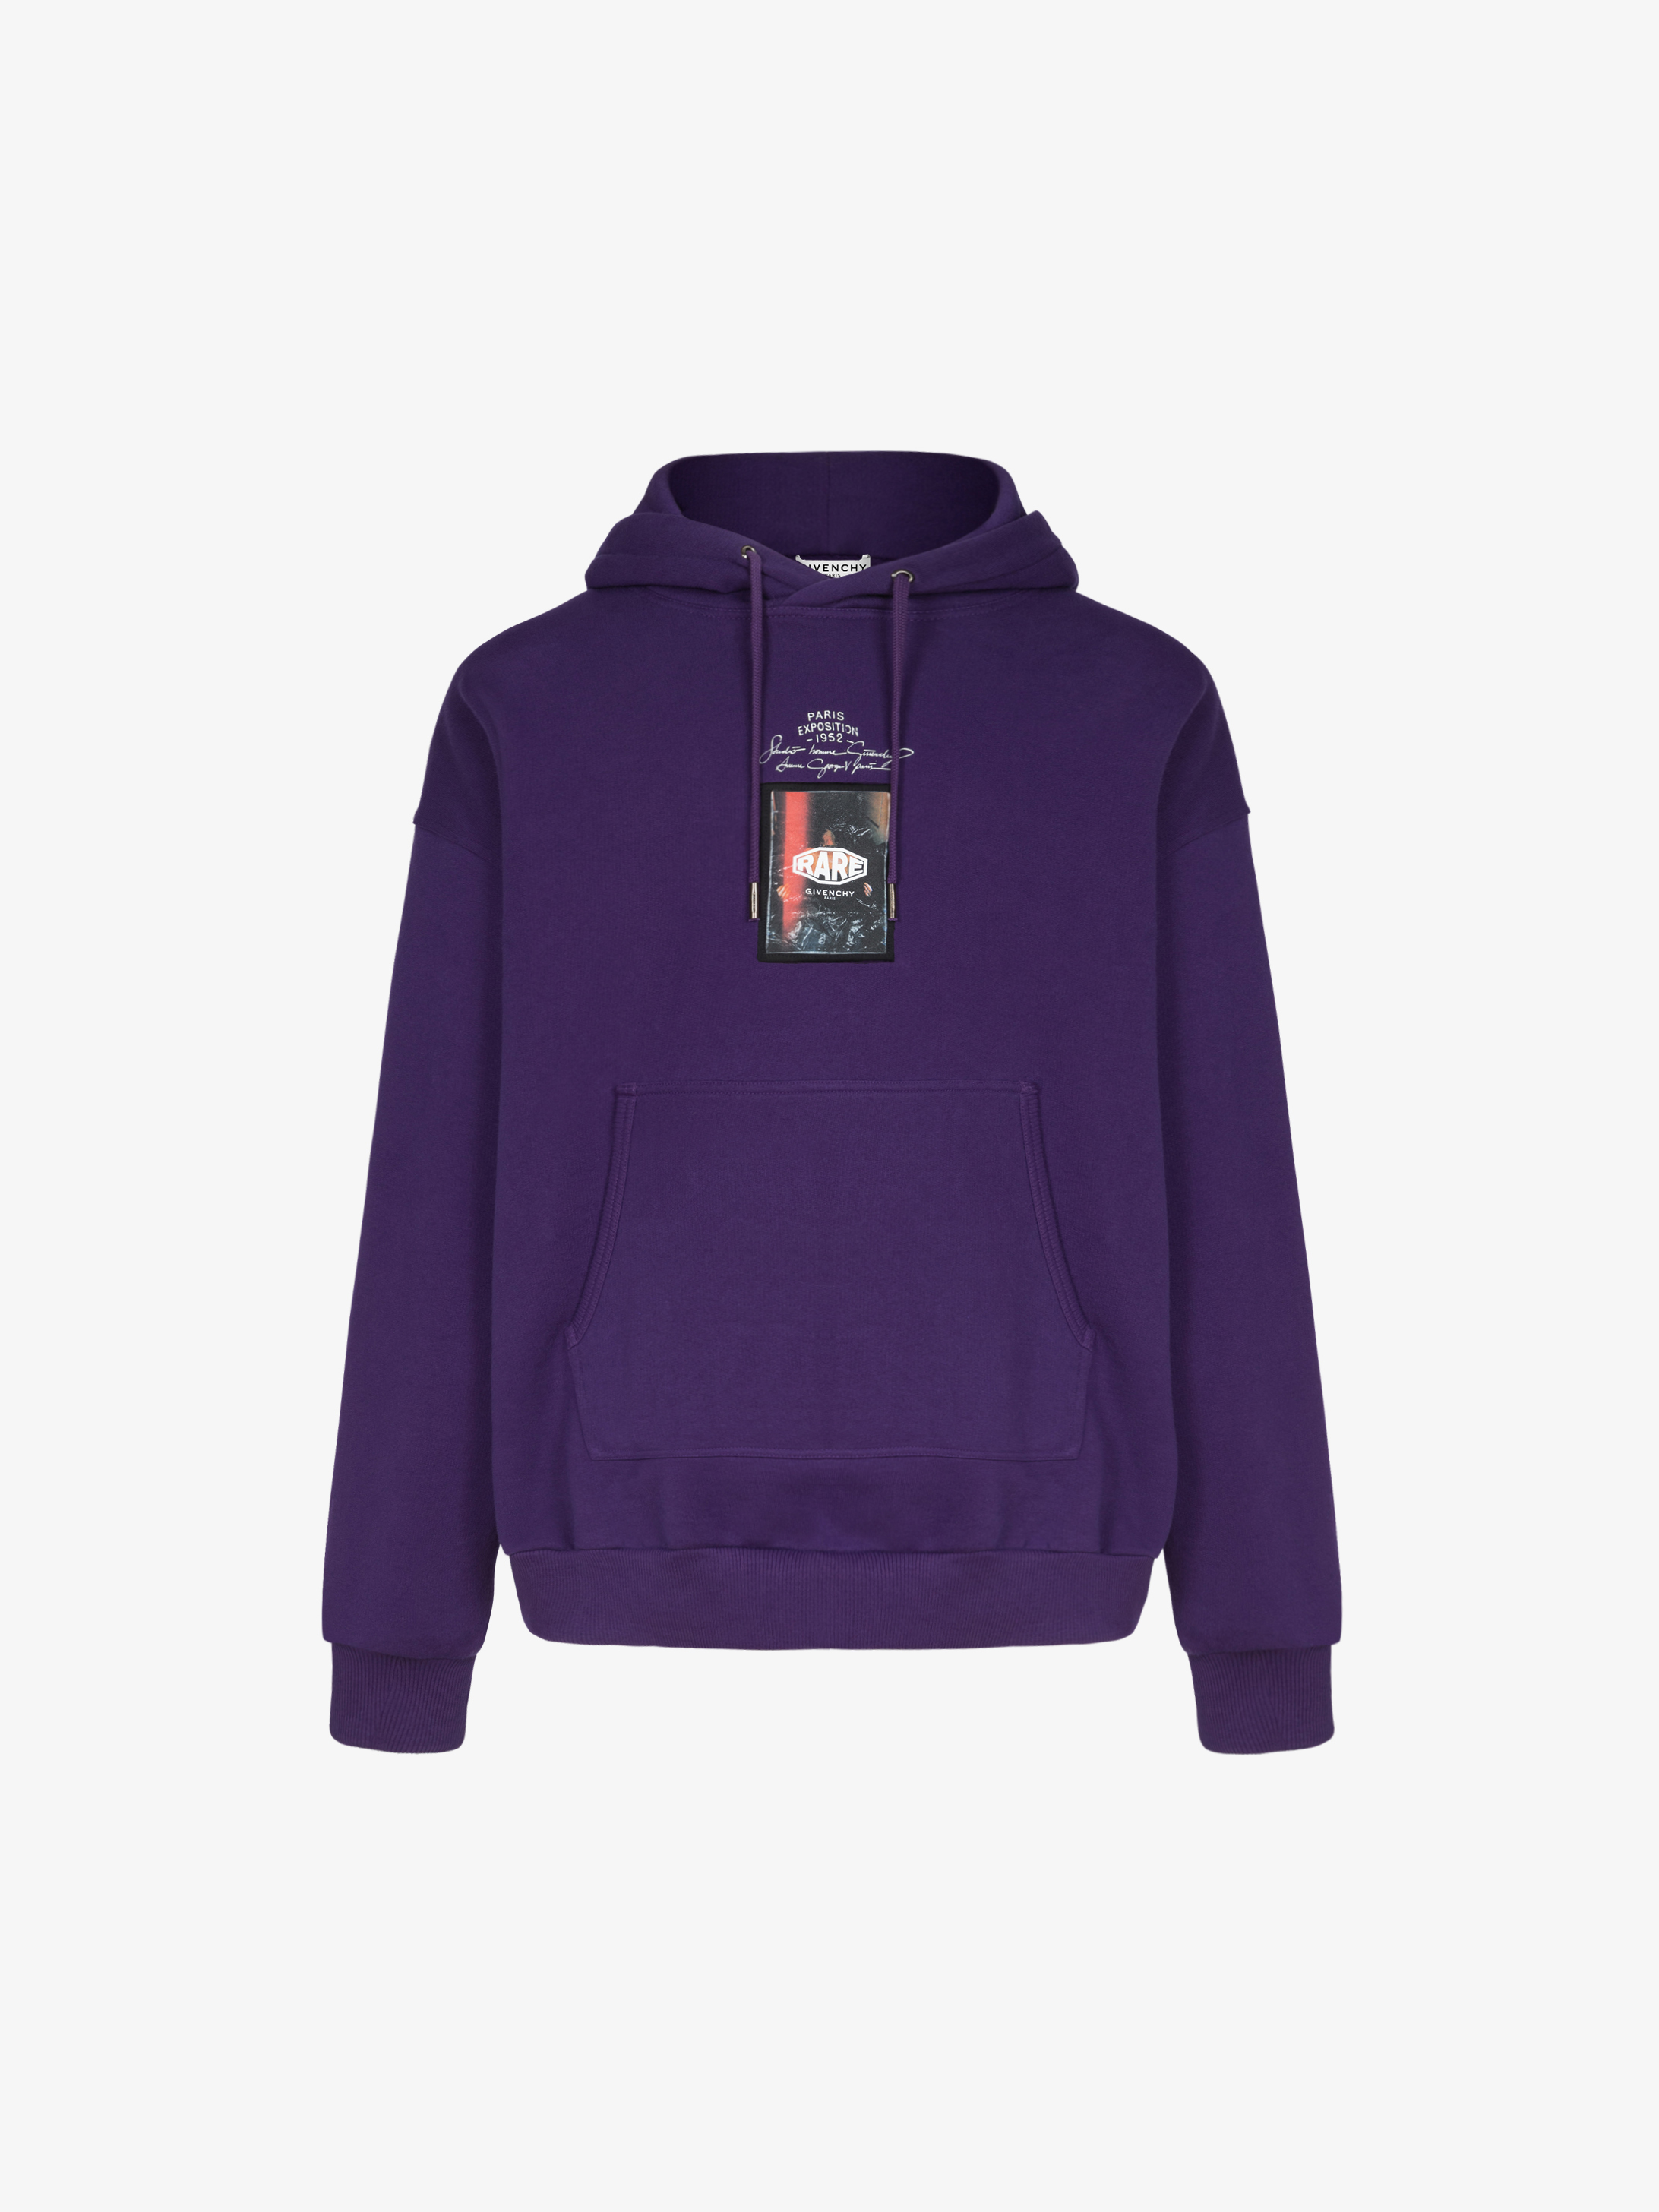 Studio Homme hoodie with patch